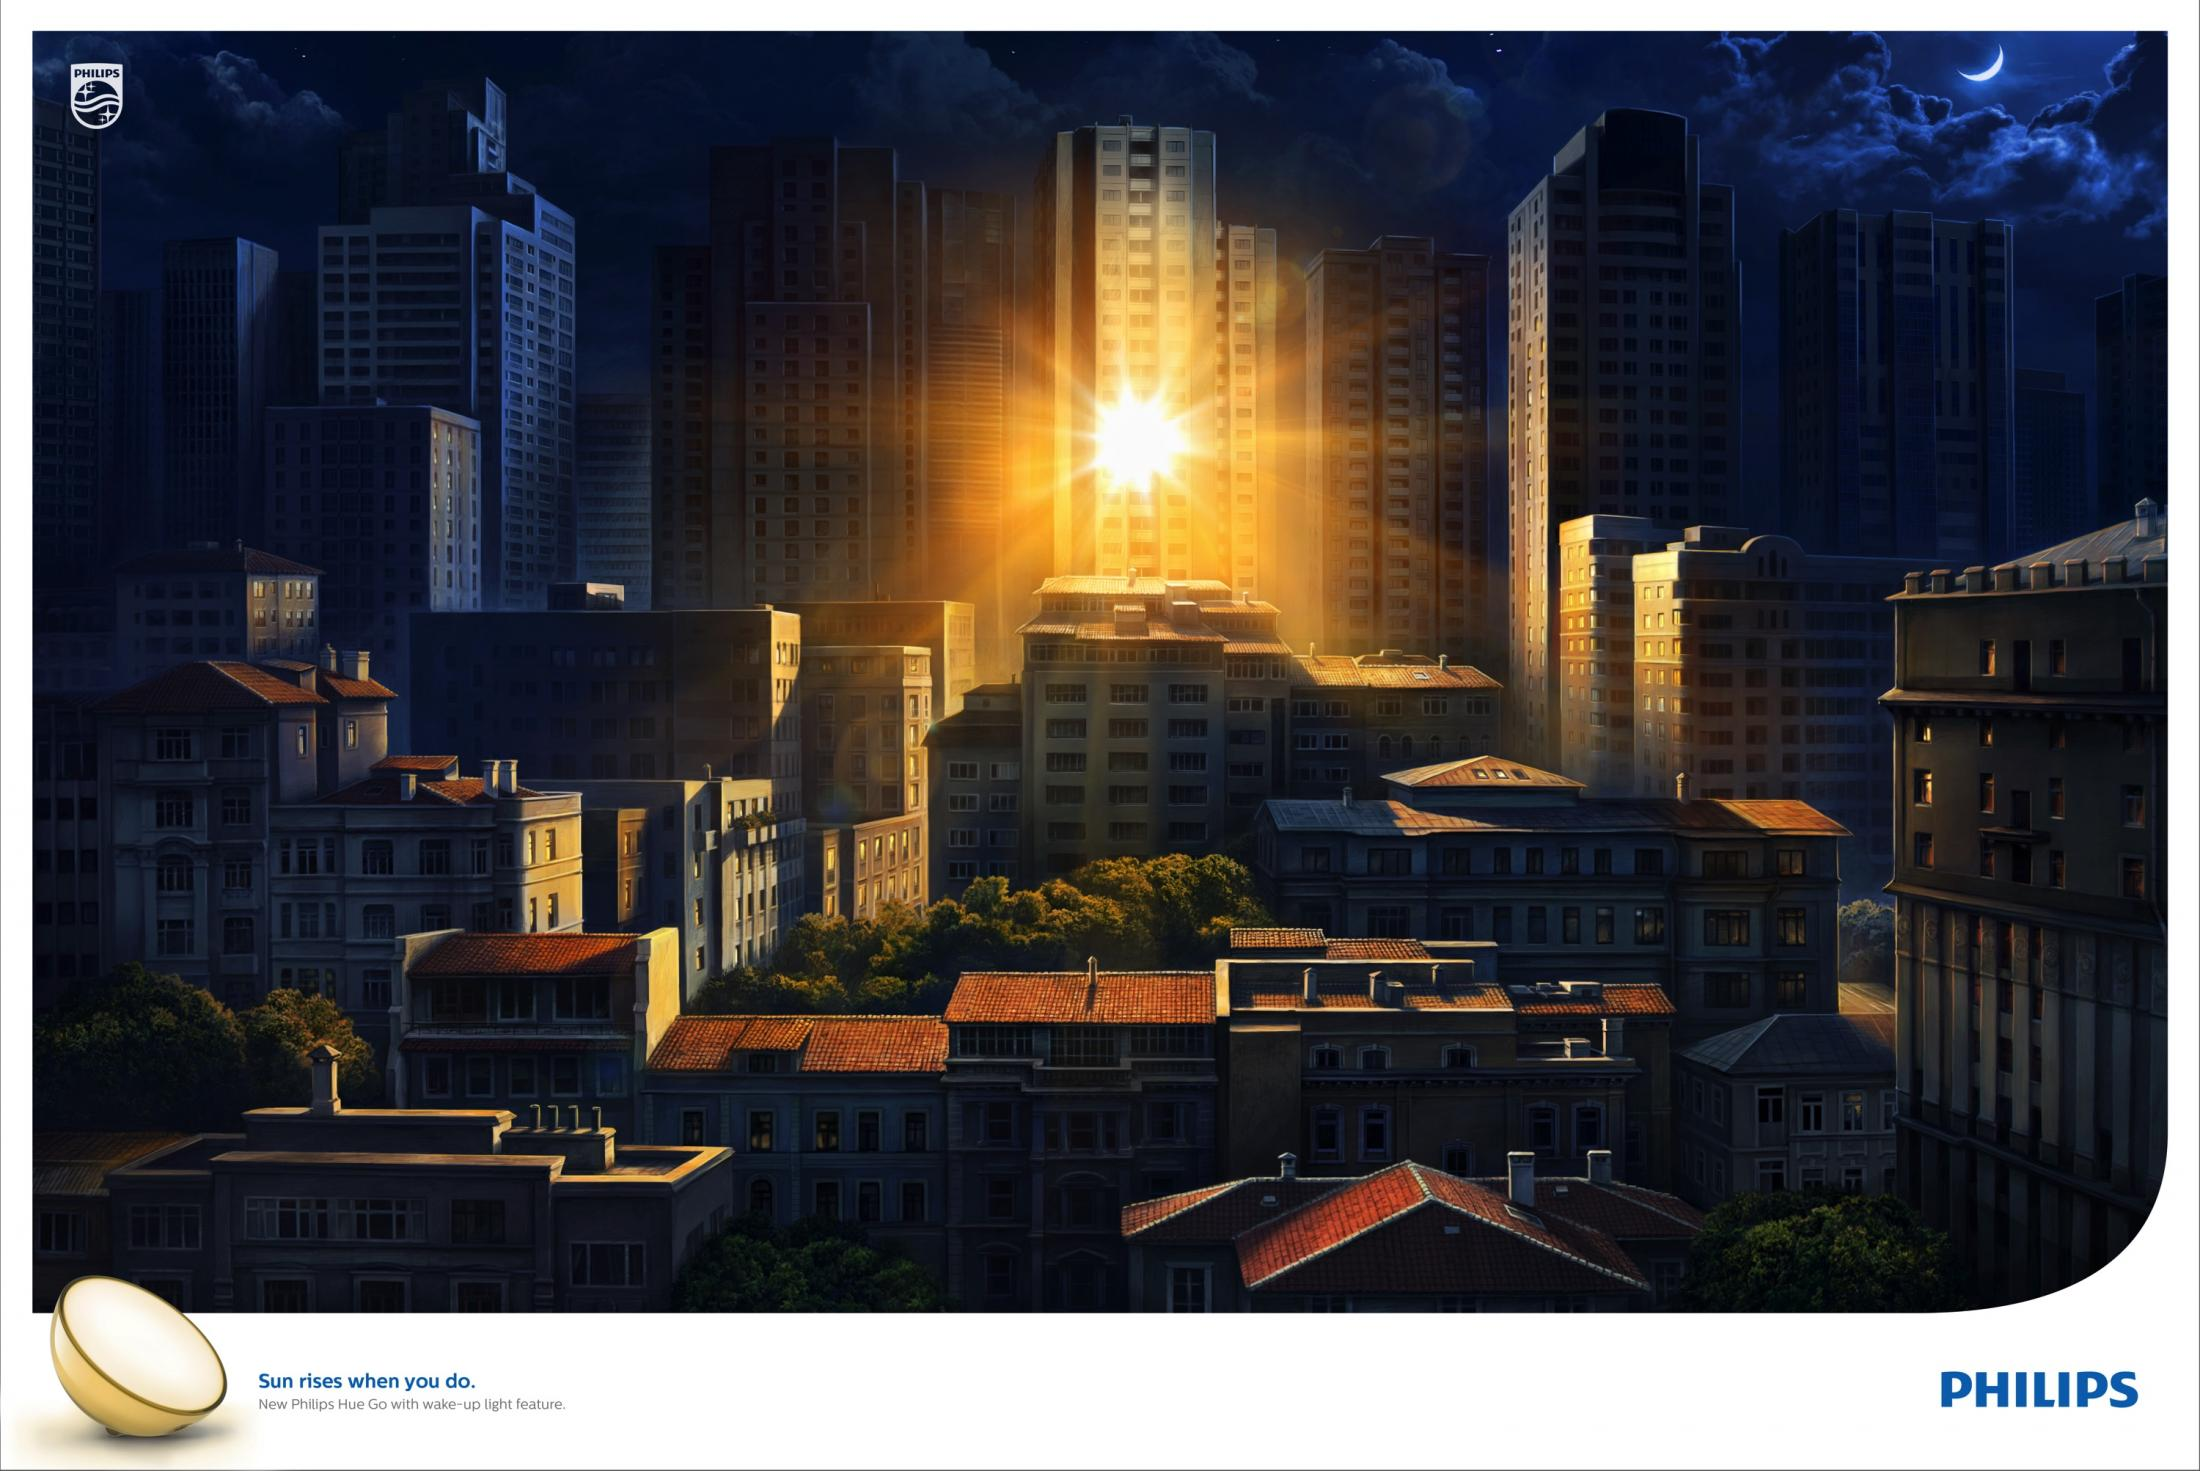 Philips Print Ad - Sunrise at night